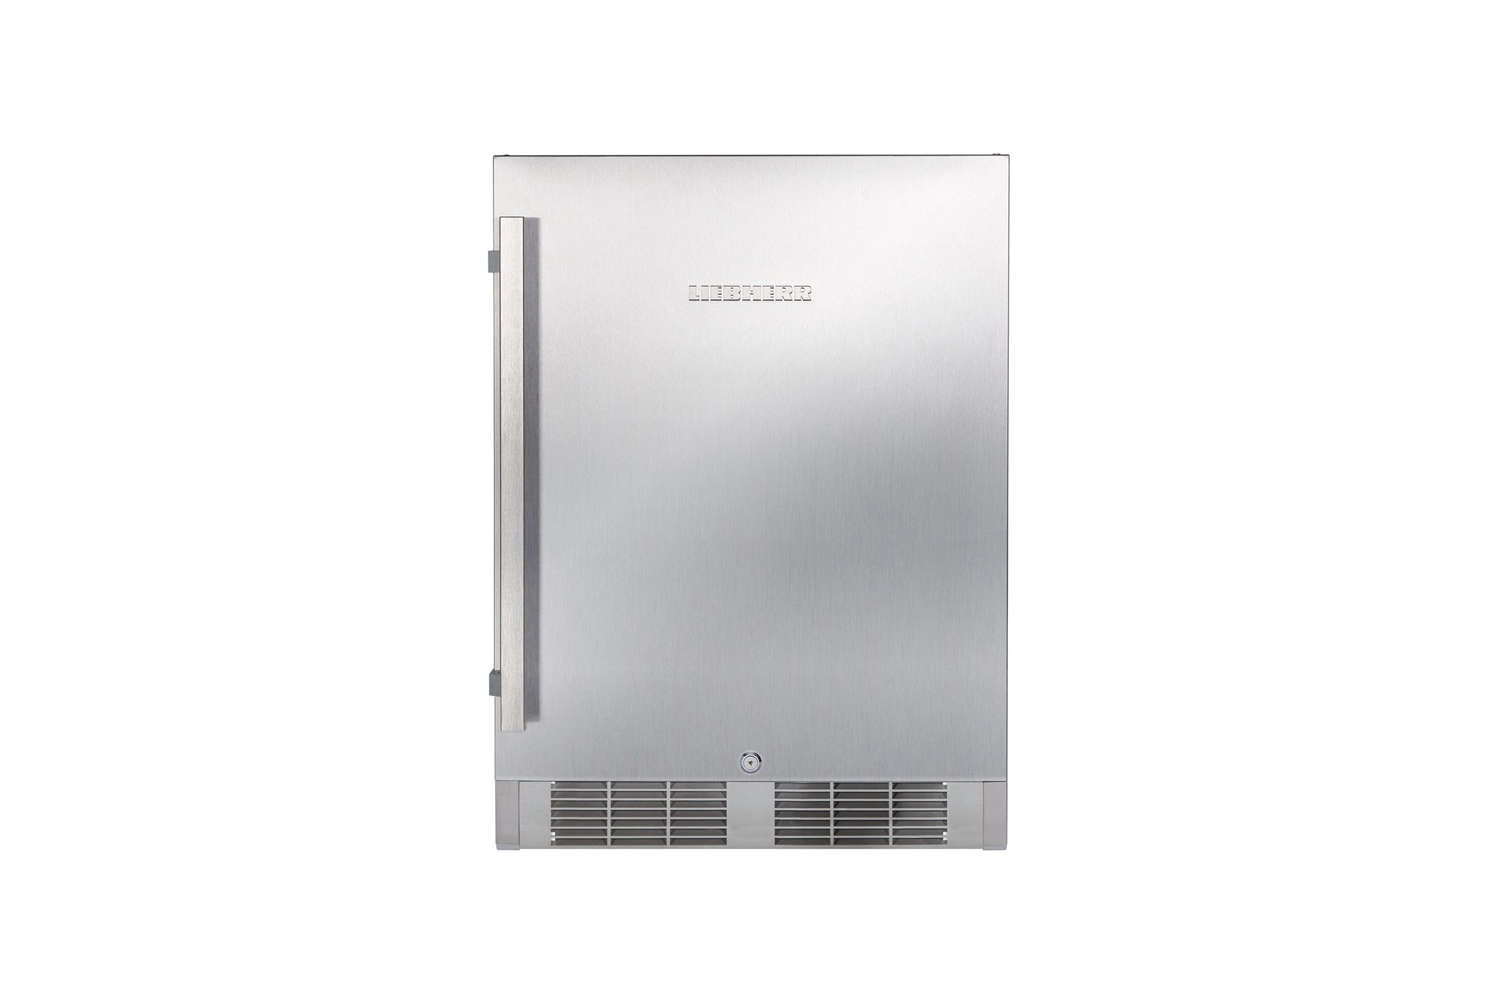 10 Easy Pieces Choosing An Undercounter Refrigerator The Liebherr \24 Inch Undercounter Compact Refrigerator (RO5\10) is \$\2,\299 at AJ Madison.